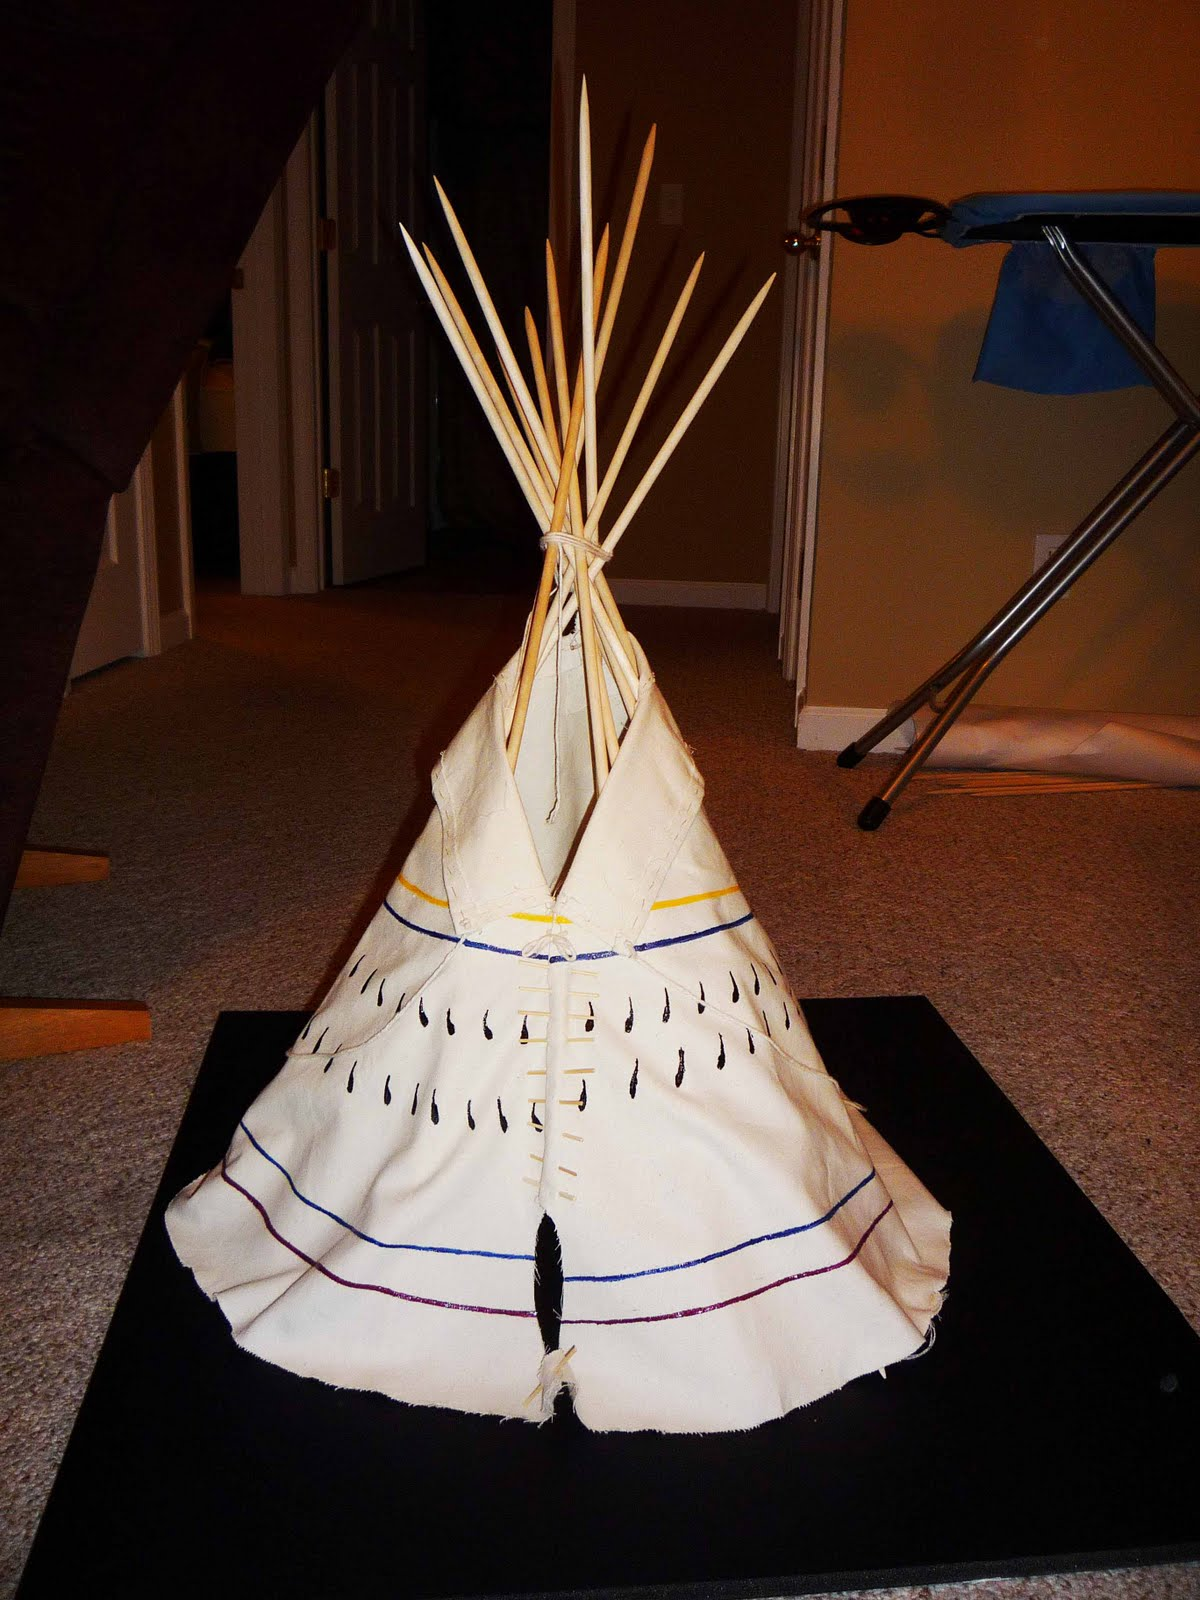 Salukitecture: My Experience Building a Scale Model Sioux Tipi